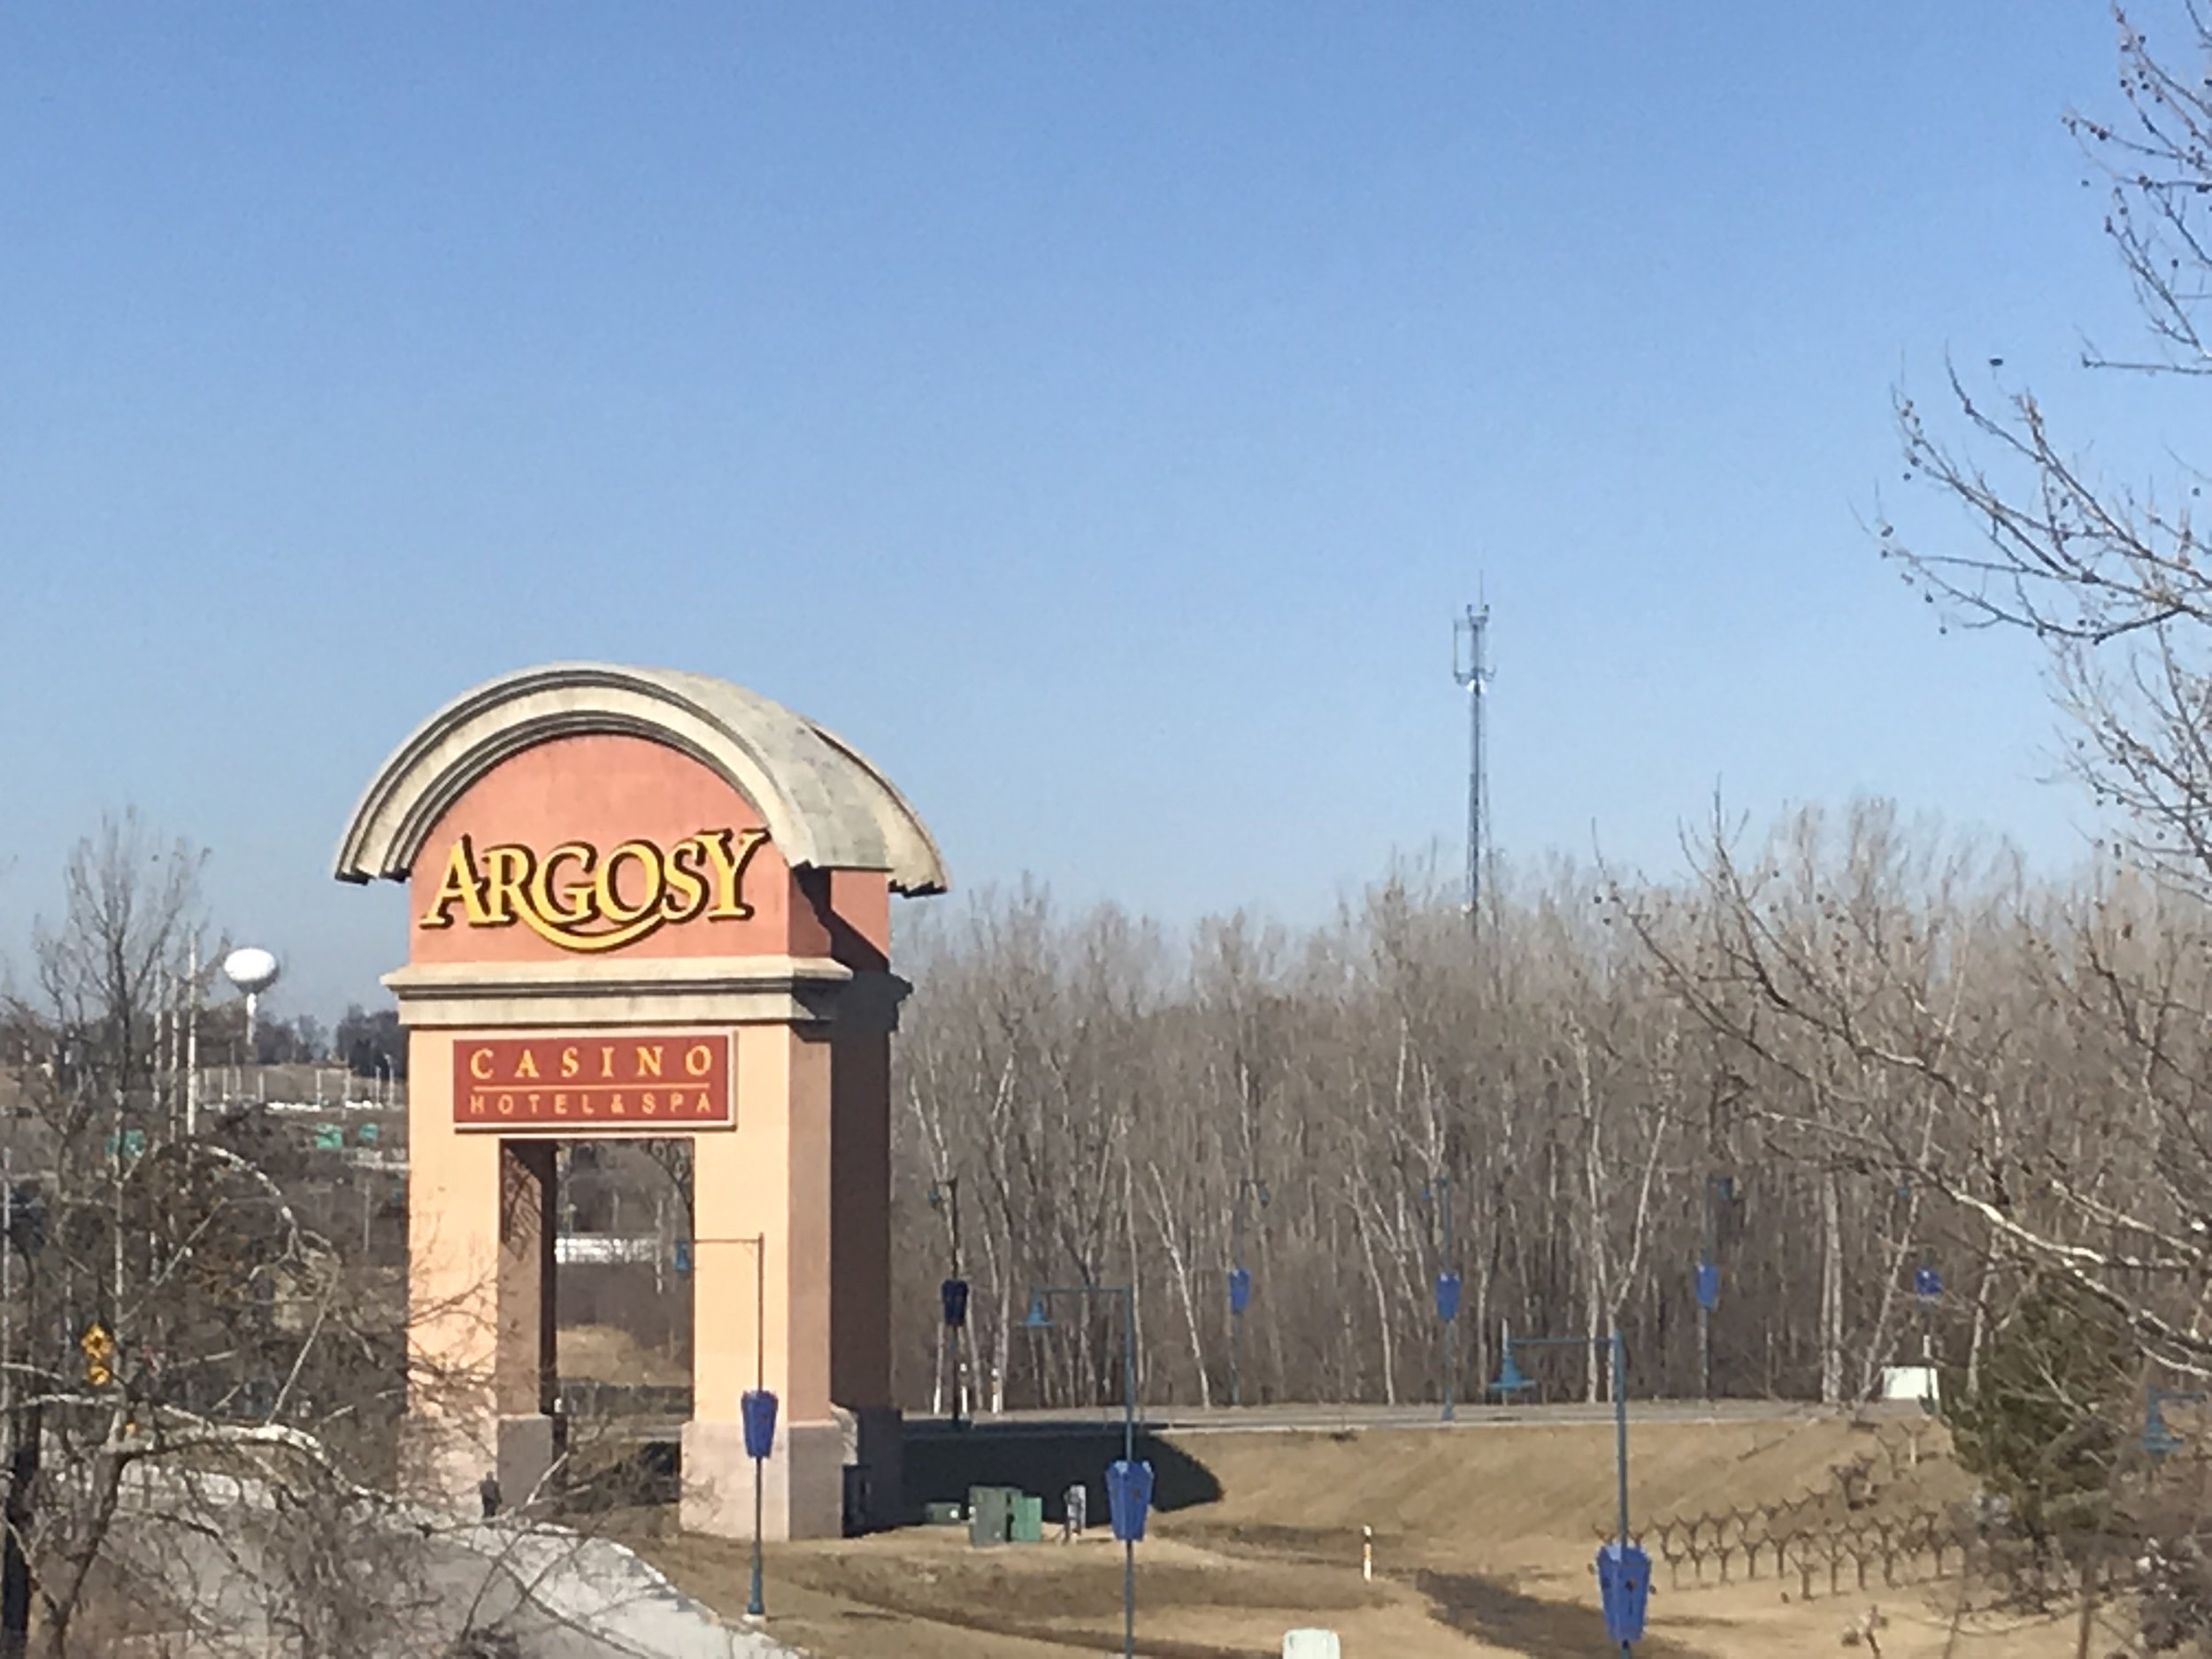 CODY THORN/Citizen photo Pictured is the Argosy Casino Hotel & Spa in Riverside entrance sign located of Interstate 635. It is the only casino in Platte County but proposals at the state level could extend gambling opportunities to places outside of river-tied casinos.